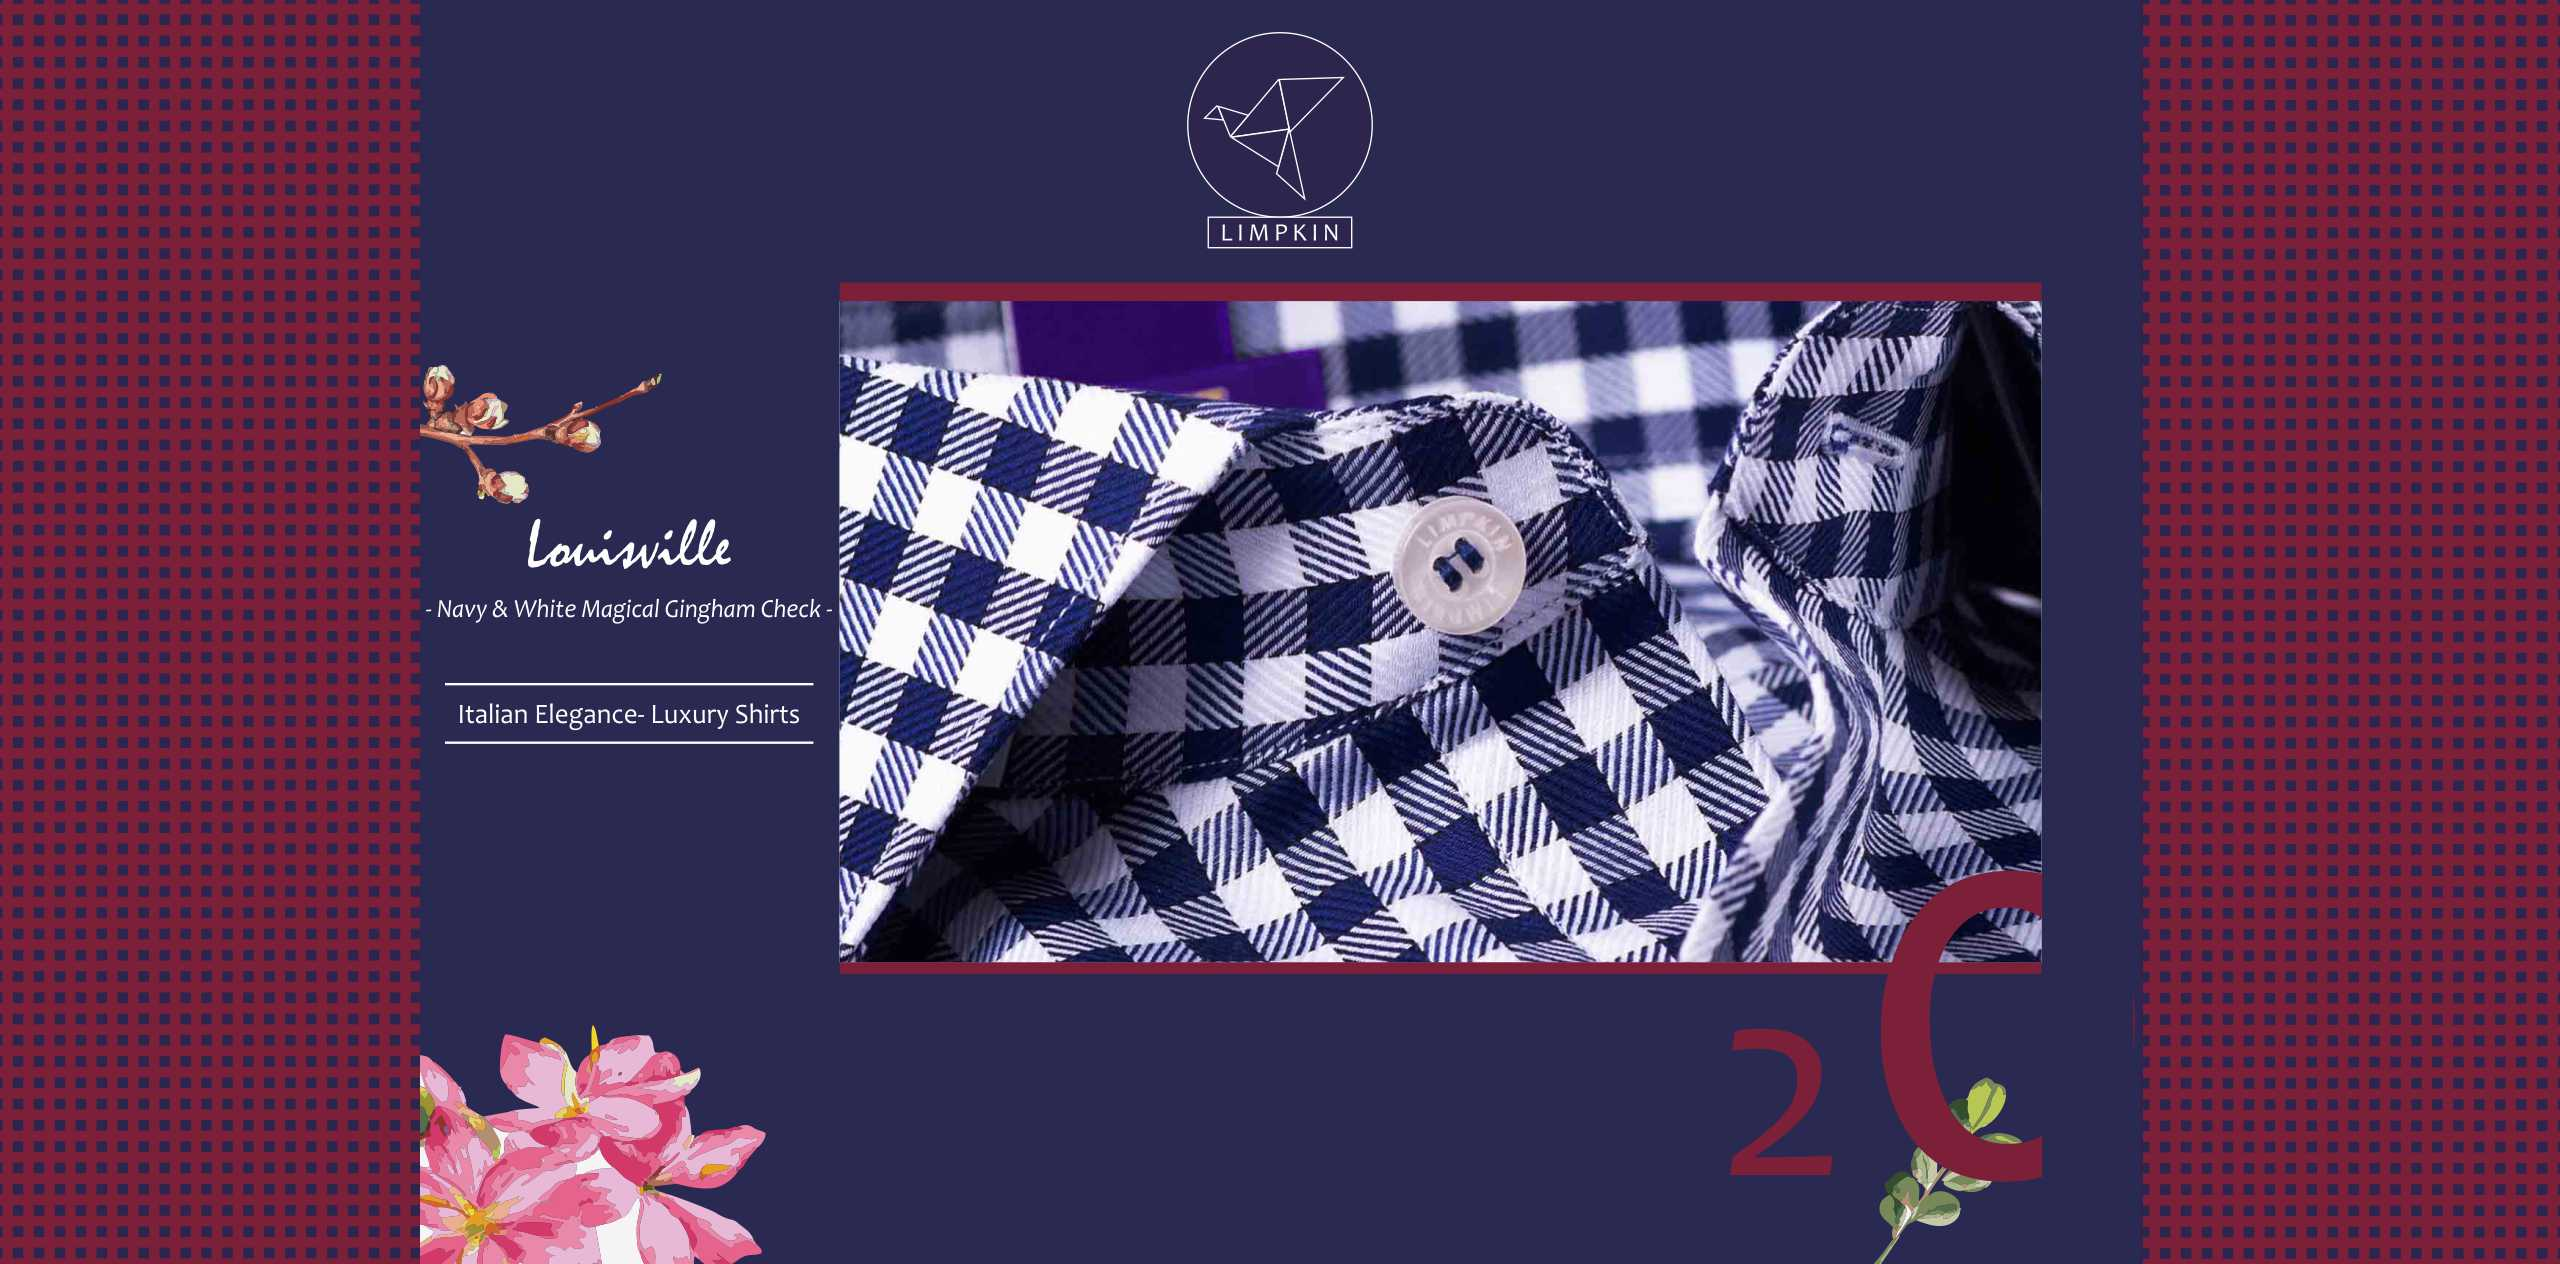 Columbus- Navy & White Magical Gingham Check- 2/140 Egyptian Giza Cotton- Delivery from 30th Sep - Banner